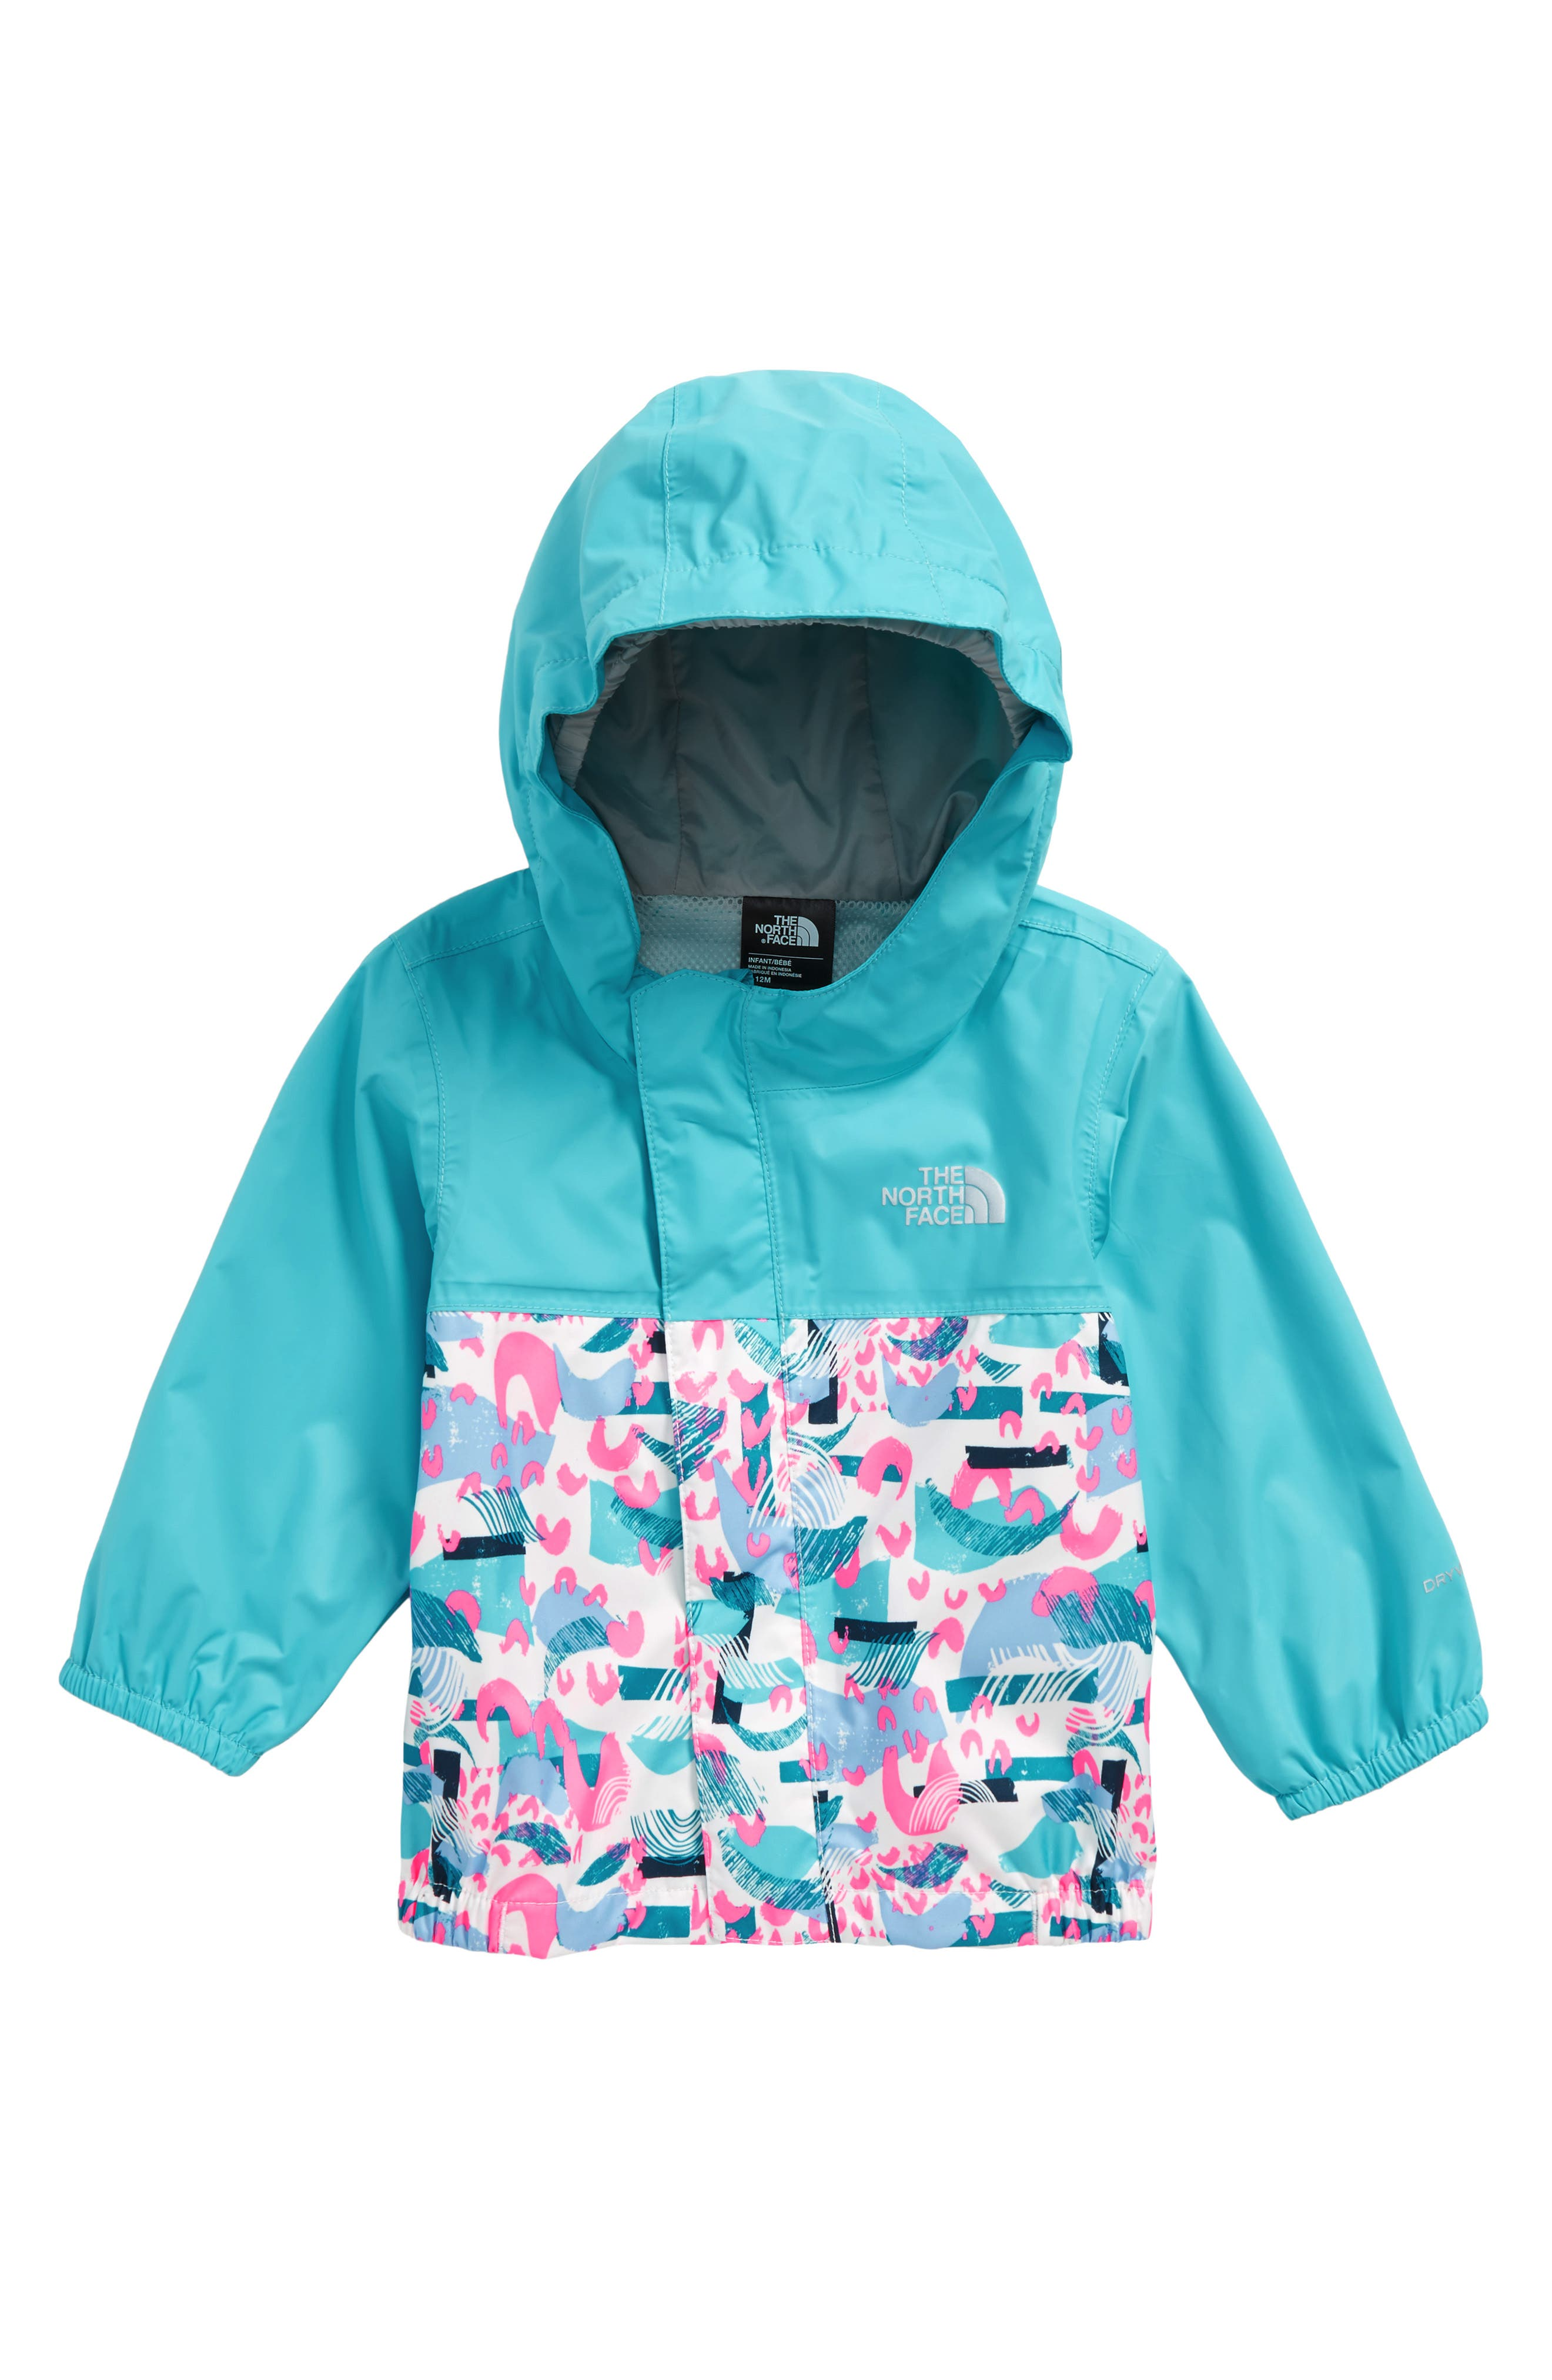 Tailout Hooded Rain Jacket,                         Main,                         color, 400